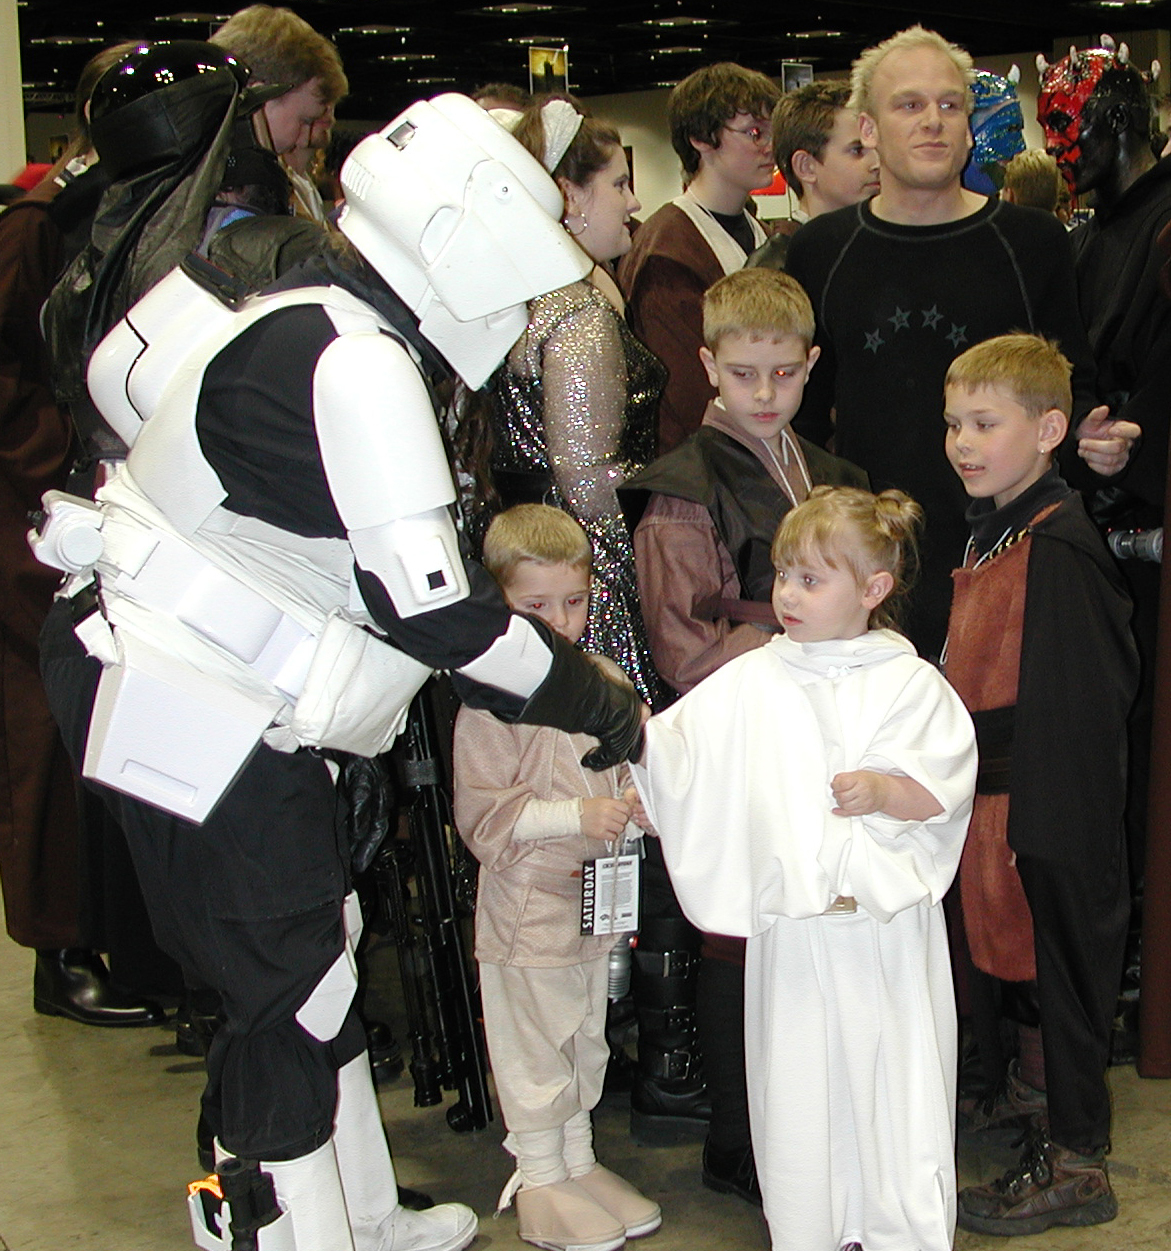 Costuming reached a whole new level, with the first official involvement of the 501st and Rebel Legions as costumed volunteers for the show. In addition to those helping out, hundreds of fans wore costumes to Celebration to immerse themselves deeper into the experience, and to help them better enjoy their time with fellow fans. Photo from the Celebration II archives.